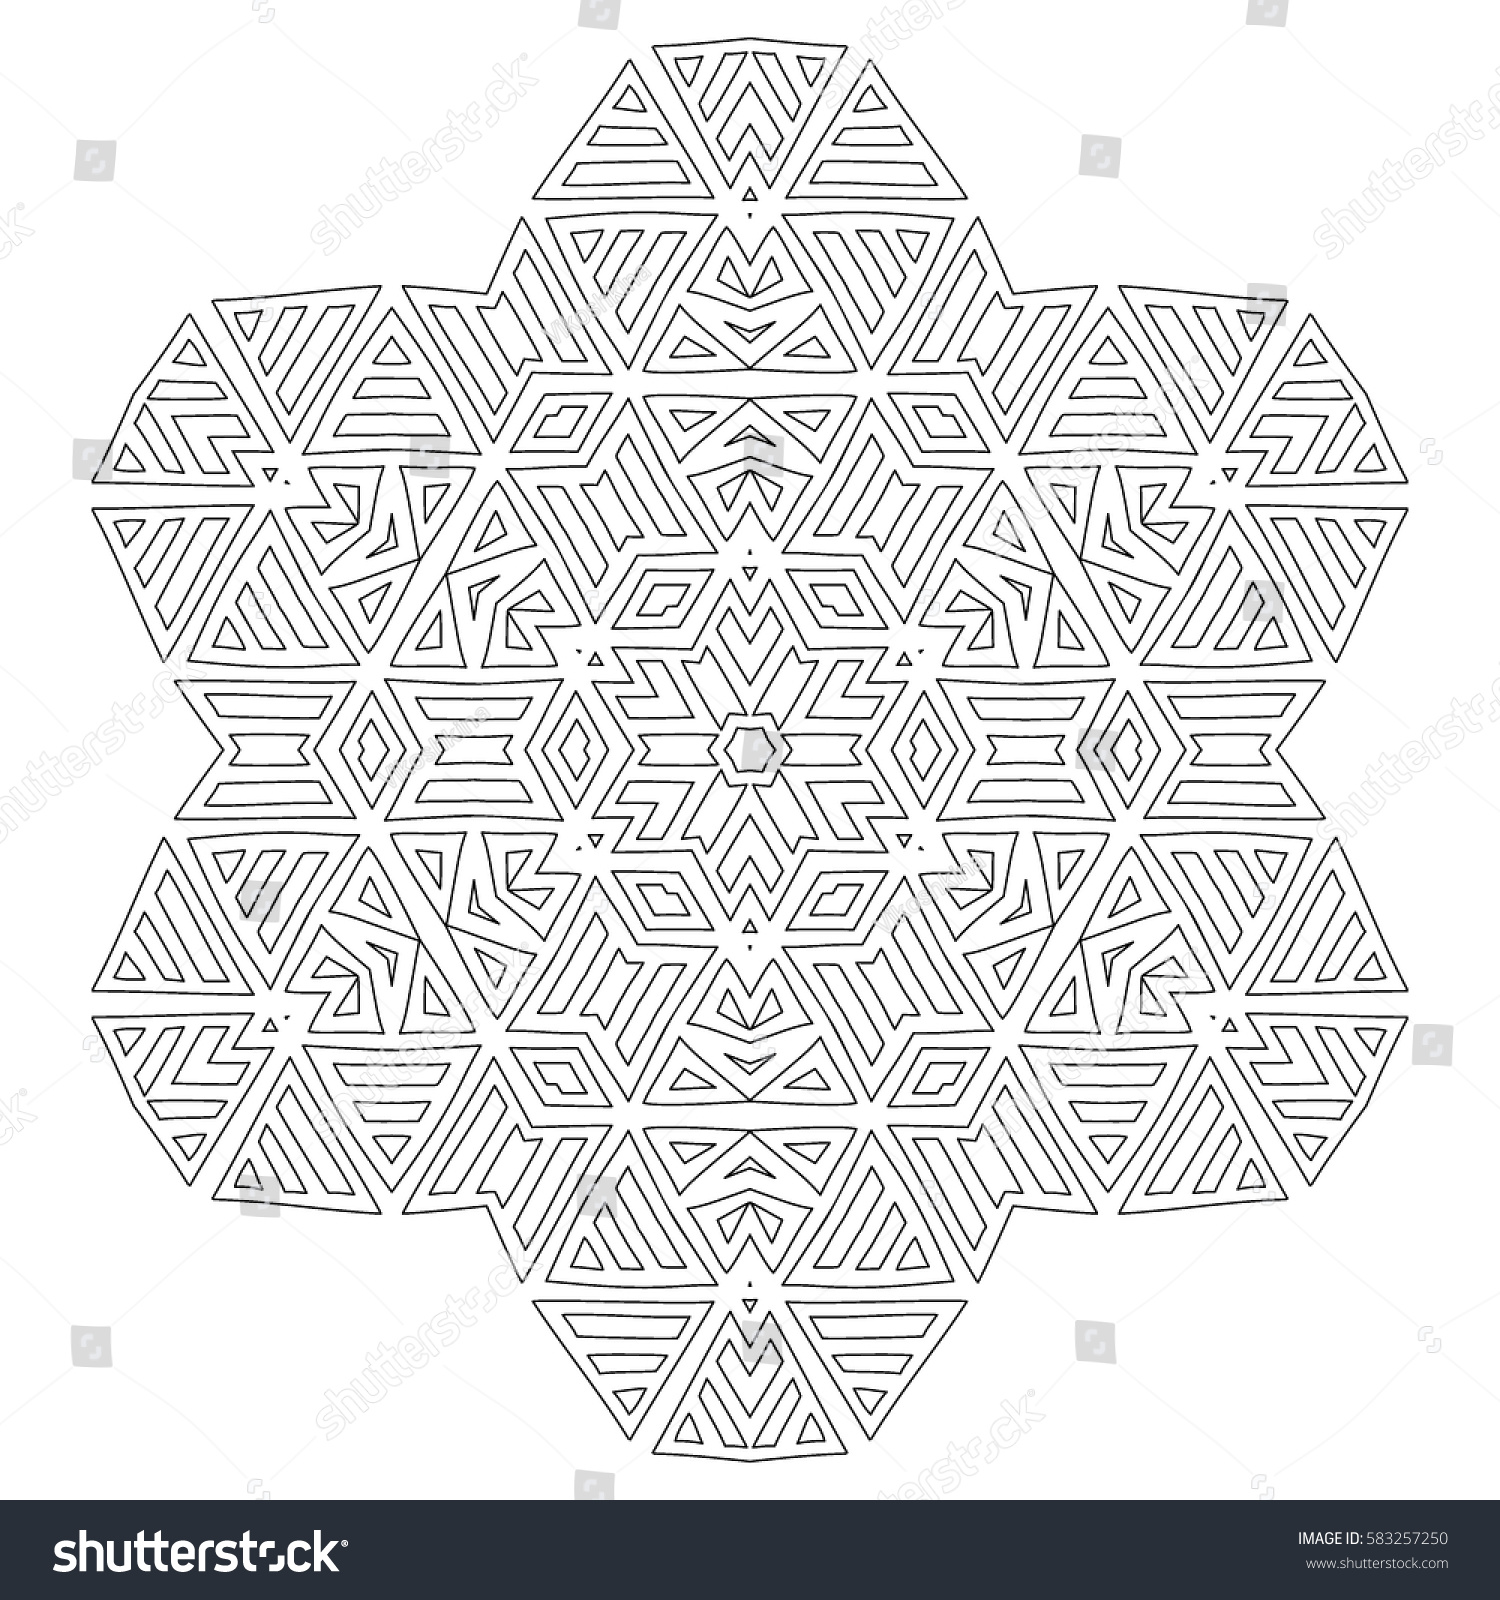 Adult Coloring Book Round Geometric Pattern Stock Vector 583257250 ...